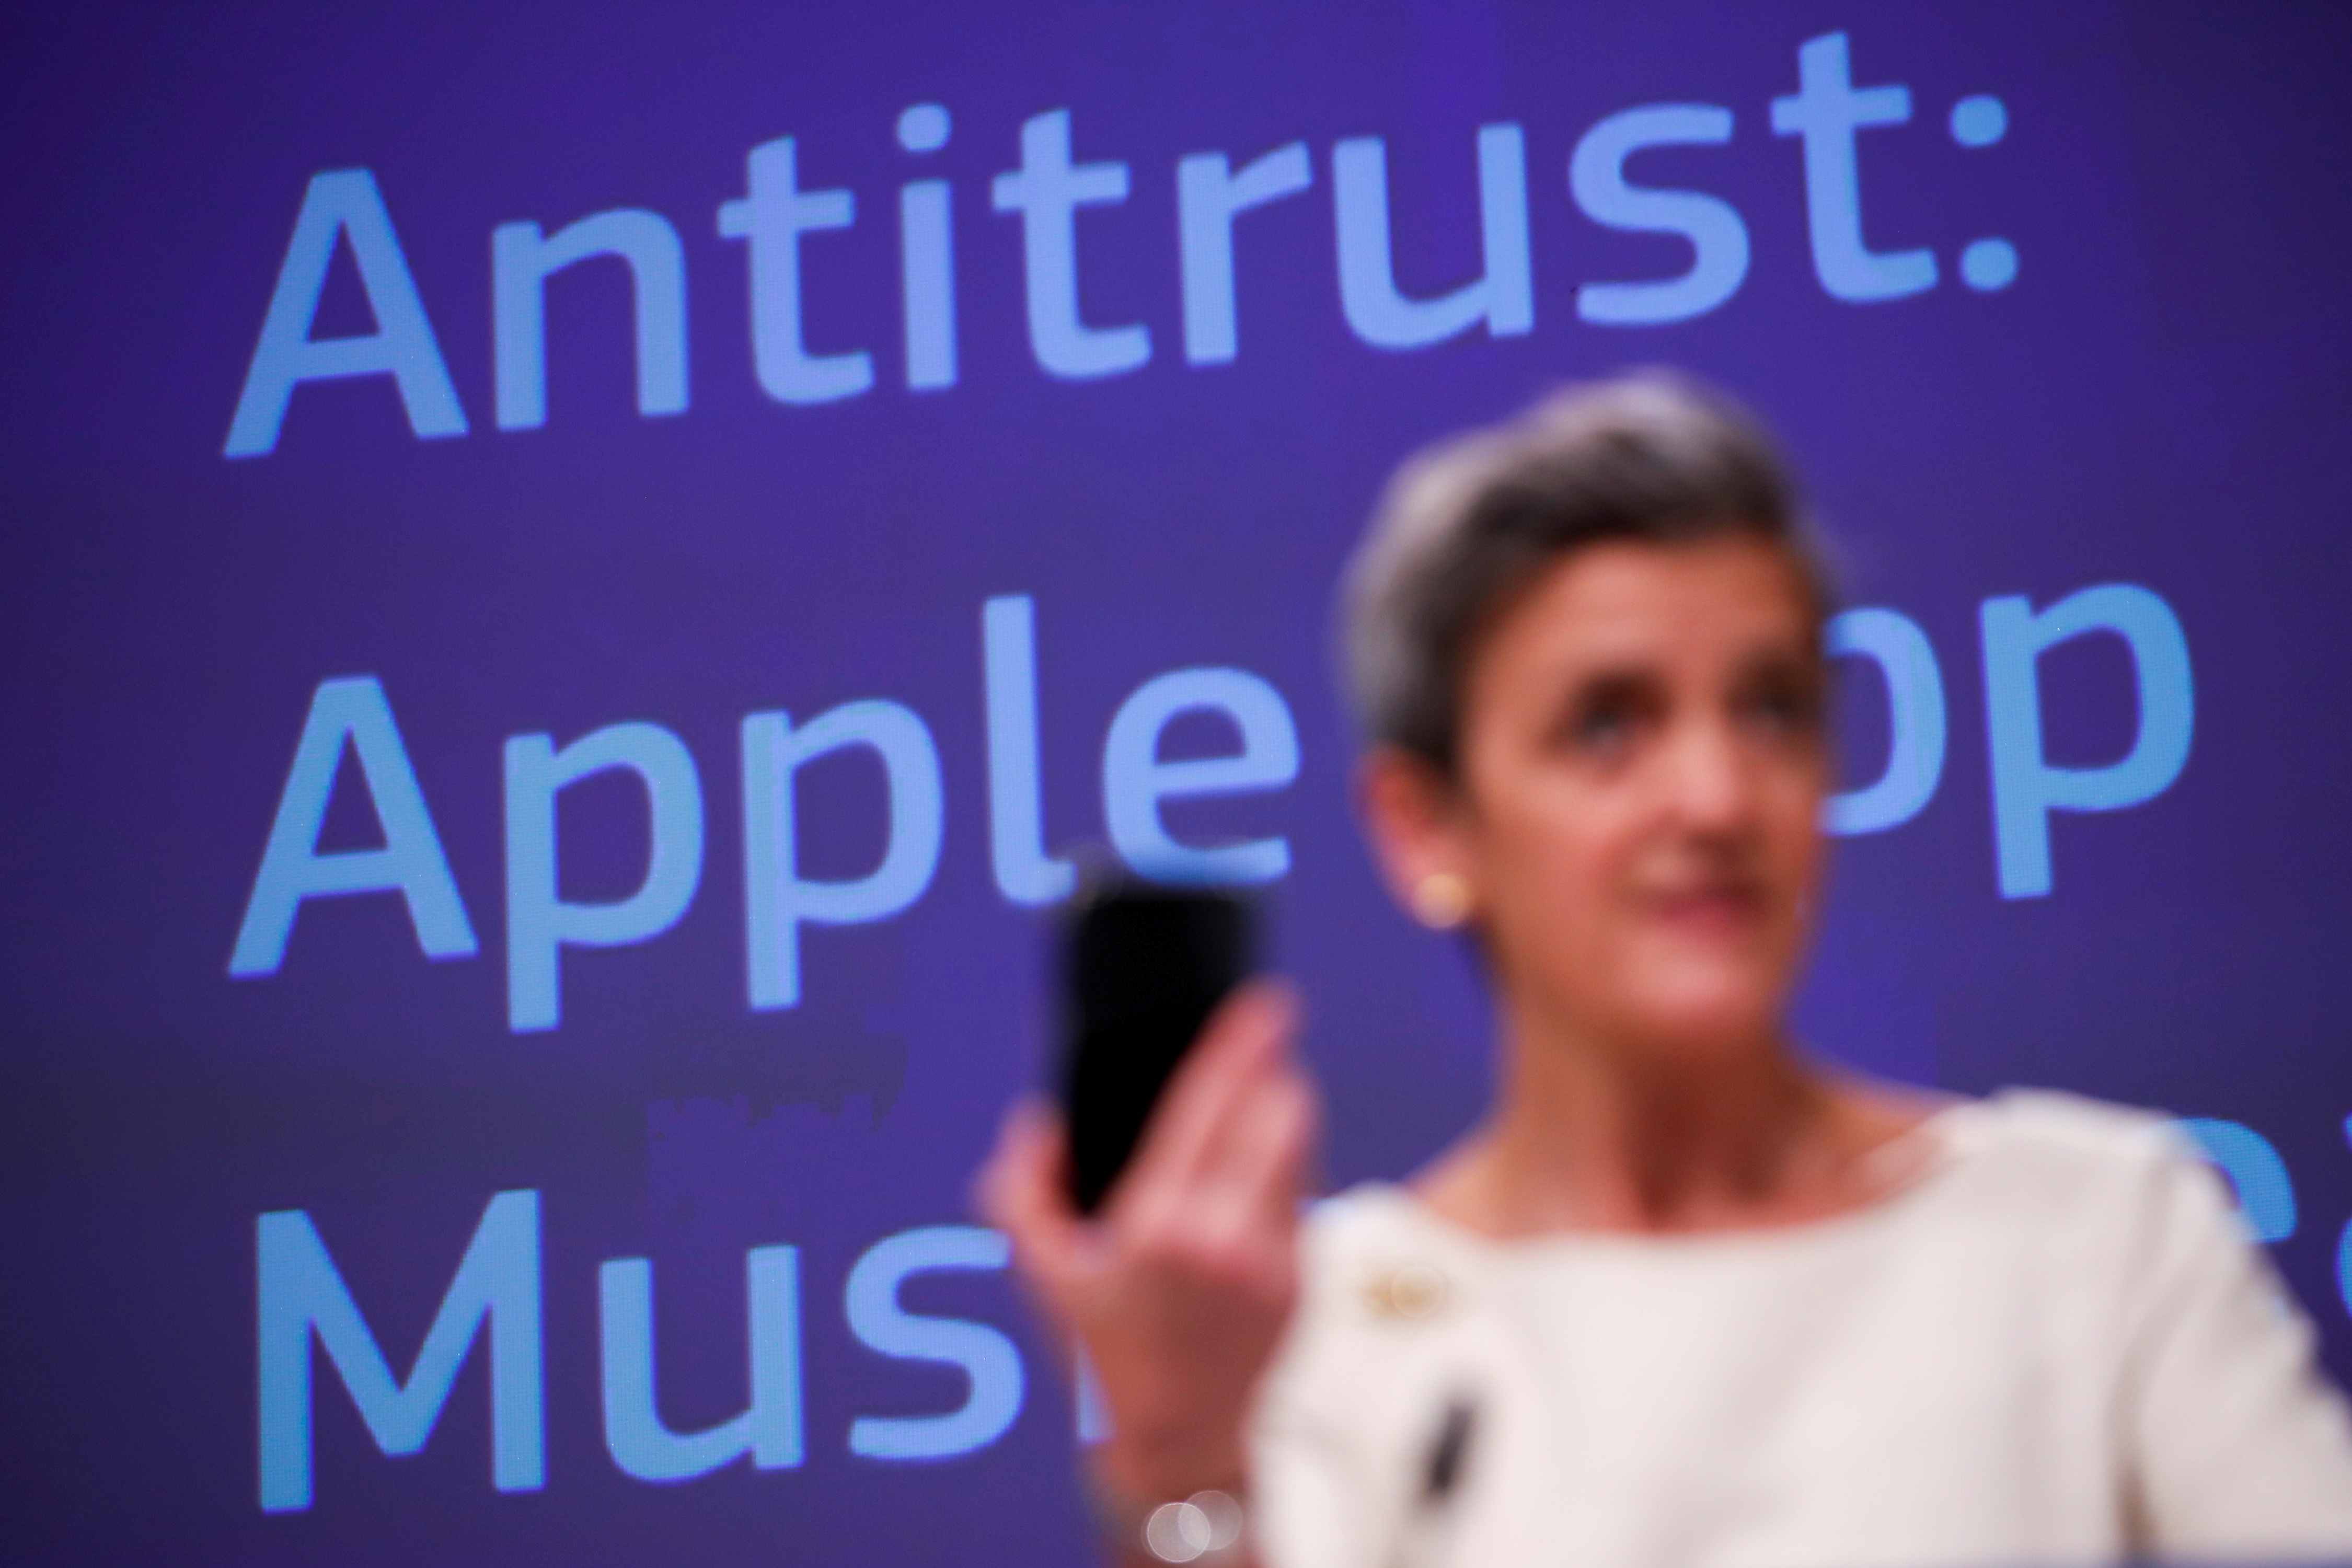 European Commissioner for Europe fit for the Digital Age Margrethe Vestager speaks during an online news conference on Apple anti trust case at the EU headquarters in Brussels, Belgium April 30, 2021. Francisco Seco/Pool via REUTERS/File Photo